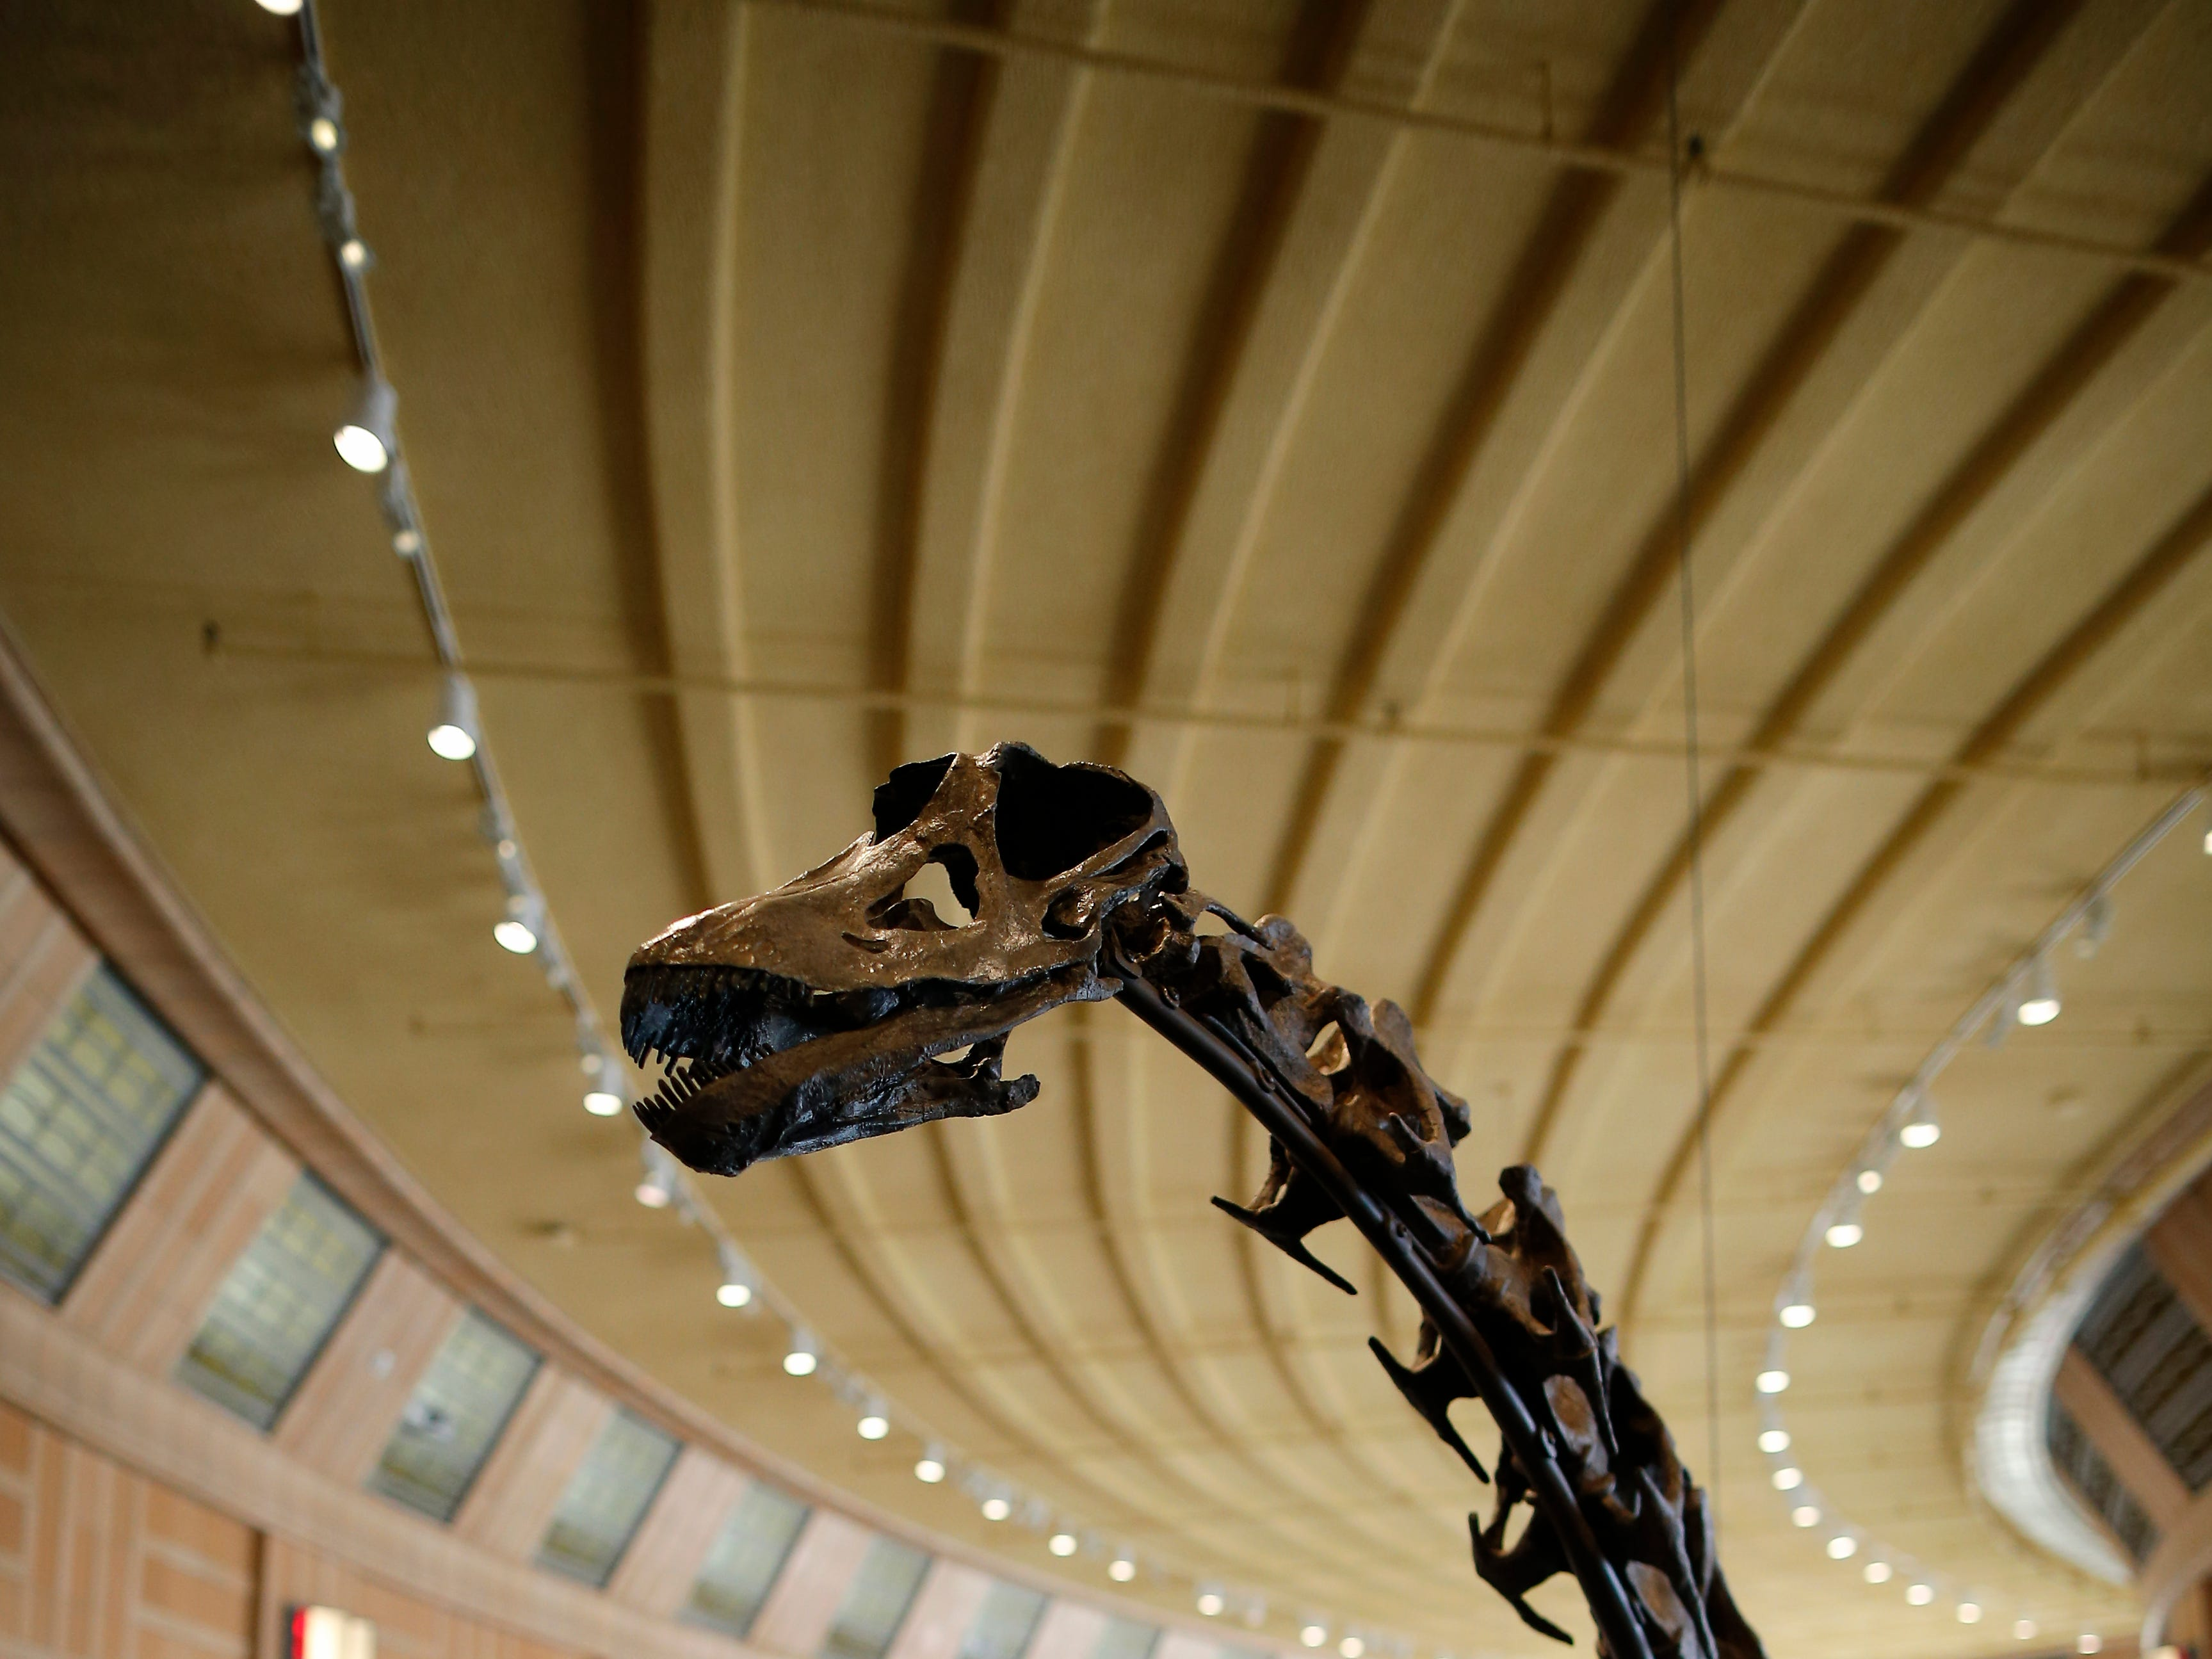 These one-of-a-kind dinosaurs now have a home in Cincinnati